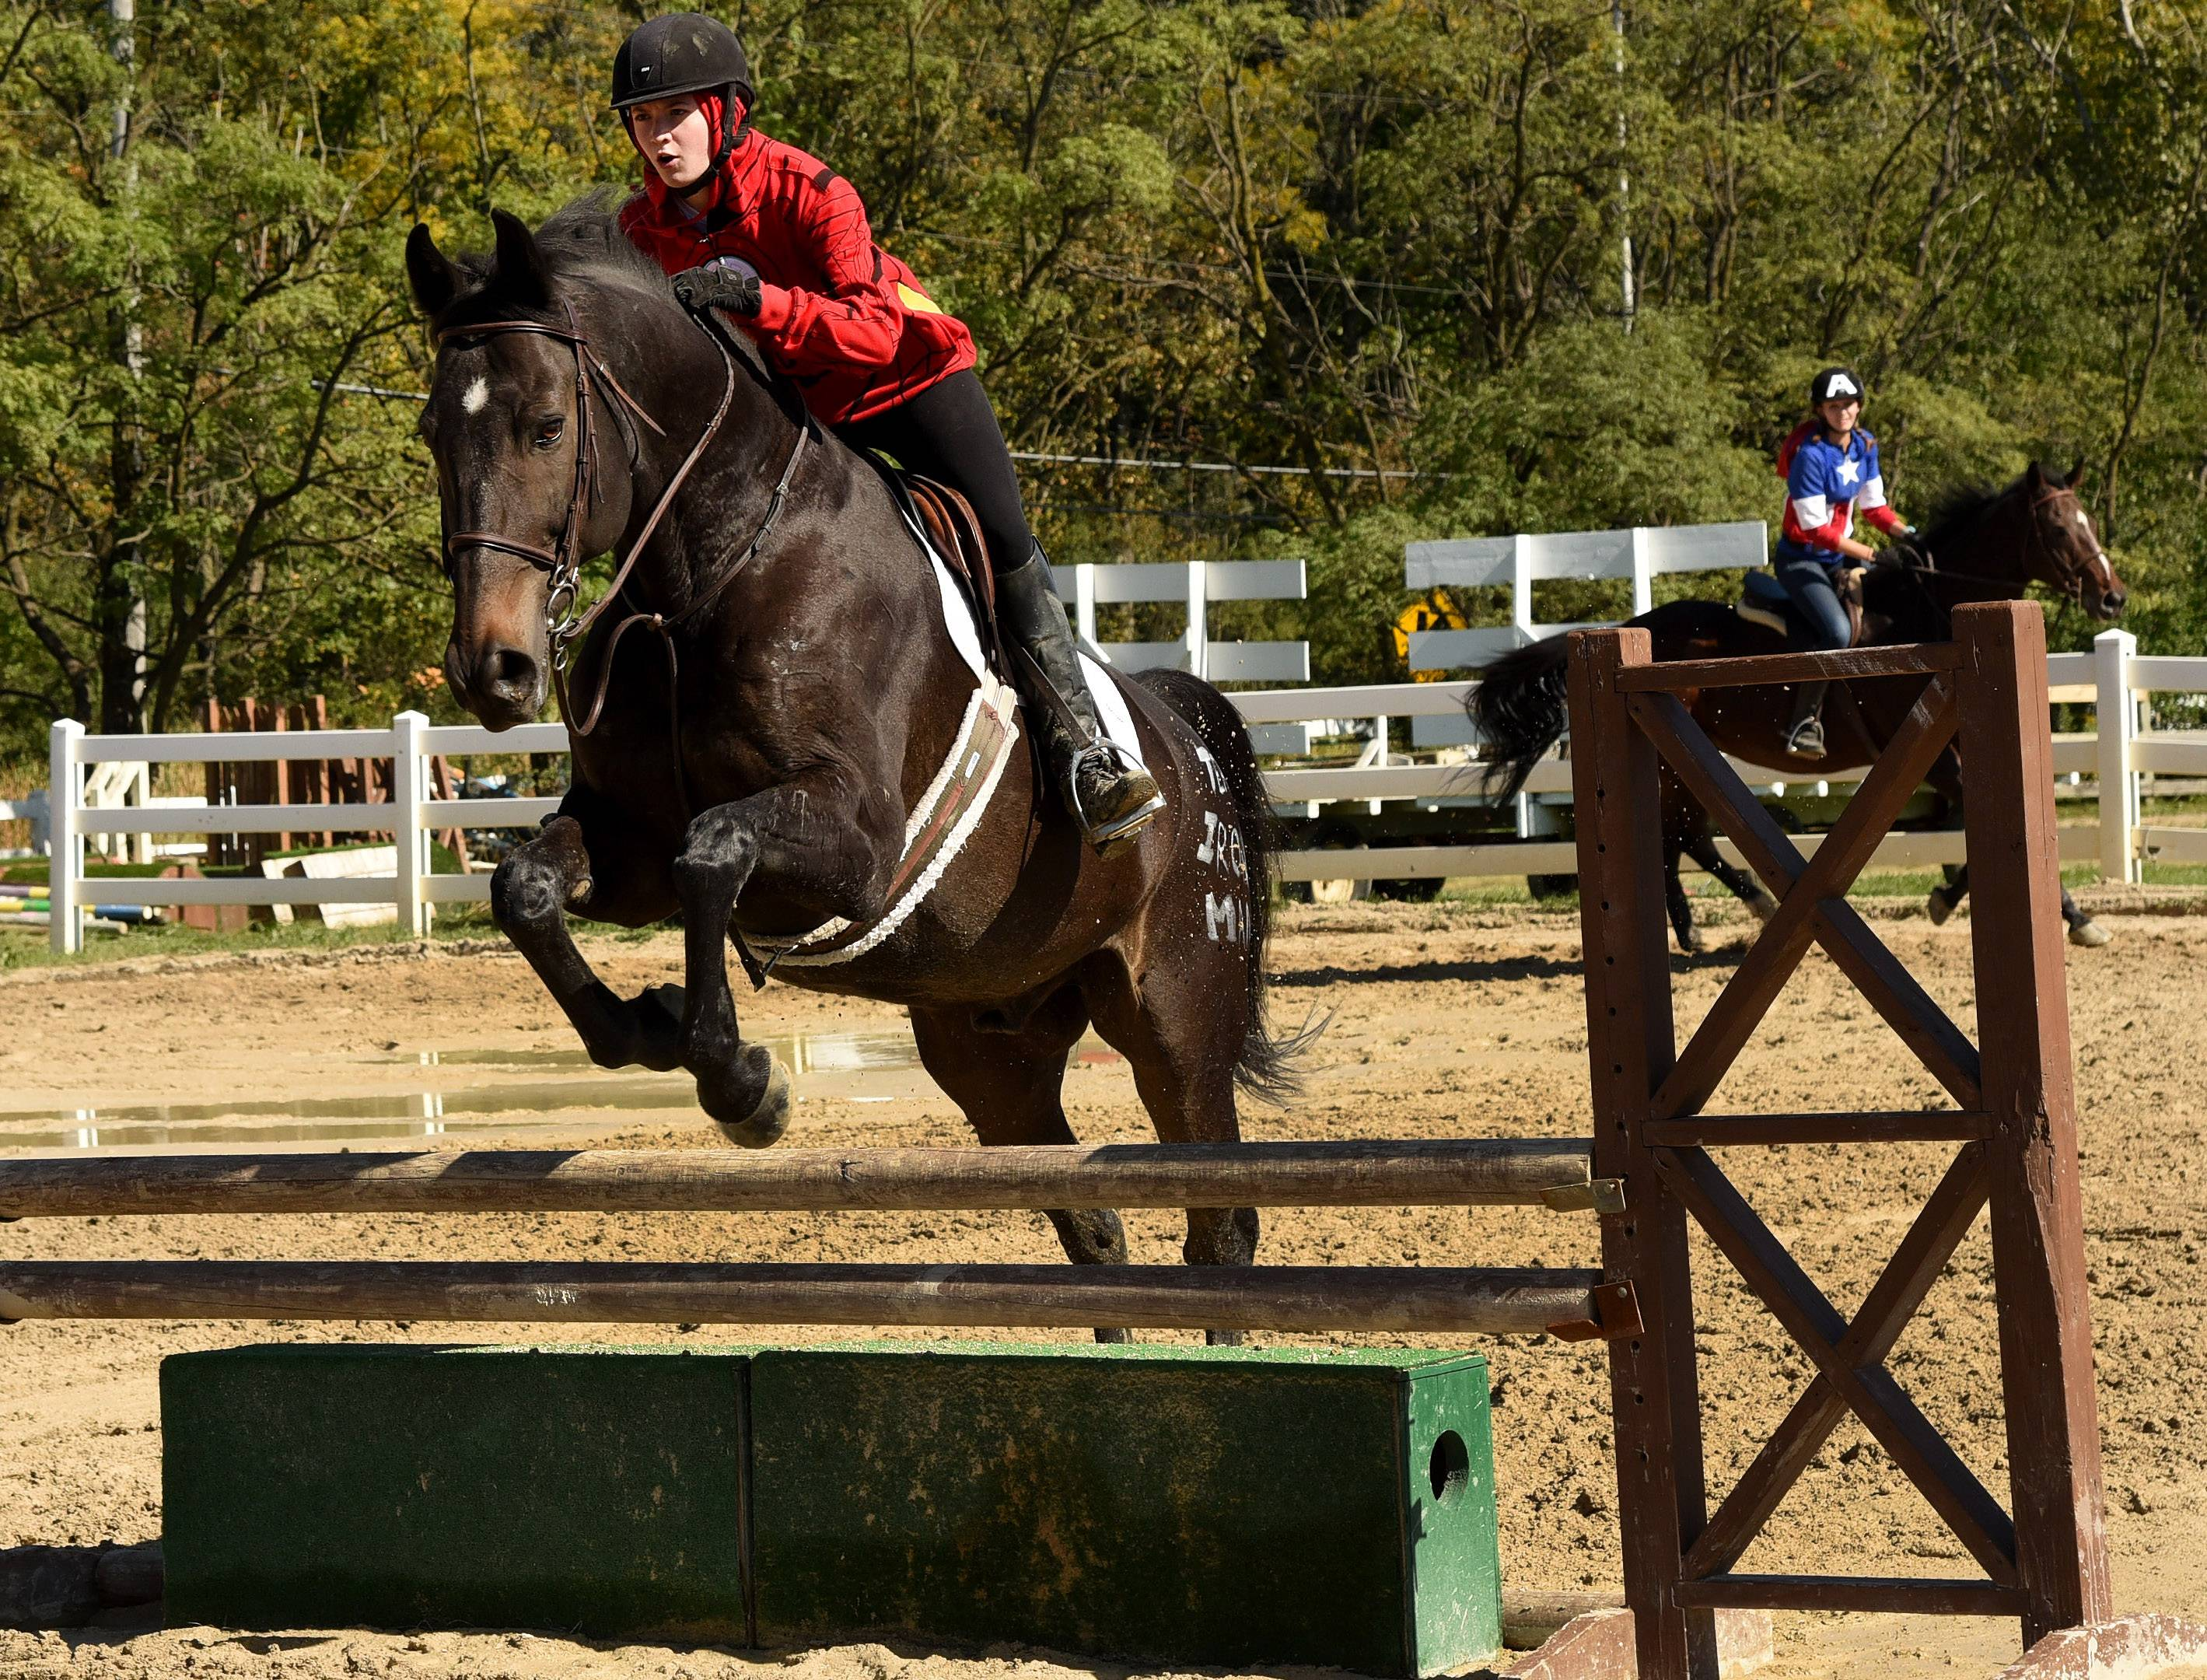 Haley Farrahar makes a jump with Goliath, with Lizzie Gaare riding Guiness trailing behind, during a riding exhibition at Palatine Stables Fall Festival.